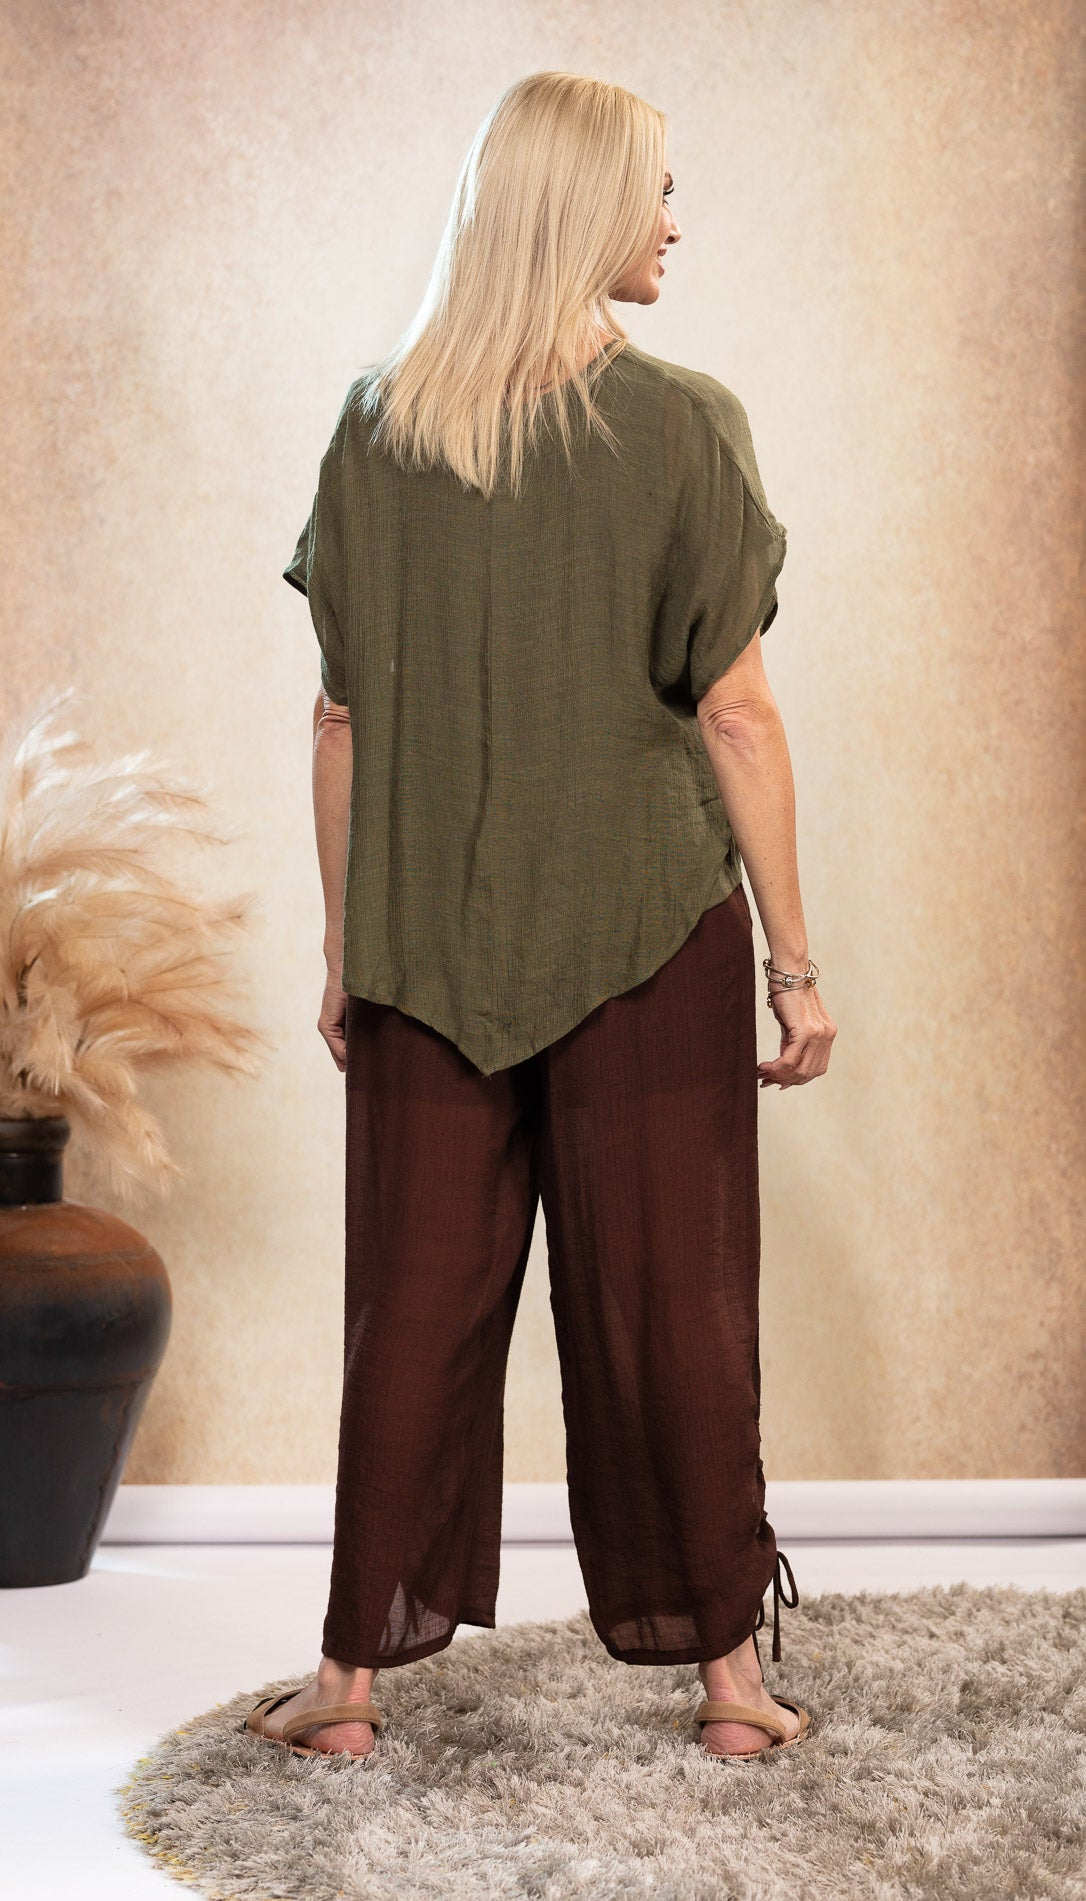 Bamboo Top earthy Olive Khaki Green colour. Bamboo Top with sleeve. Chocolate Brown long bamboo pants. Harem pants. Bamboo Pants with pockets. Natural coloured shoes. Nude colour Avarca sandals.